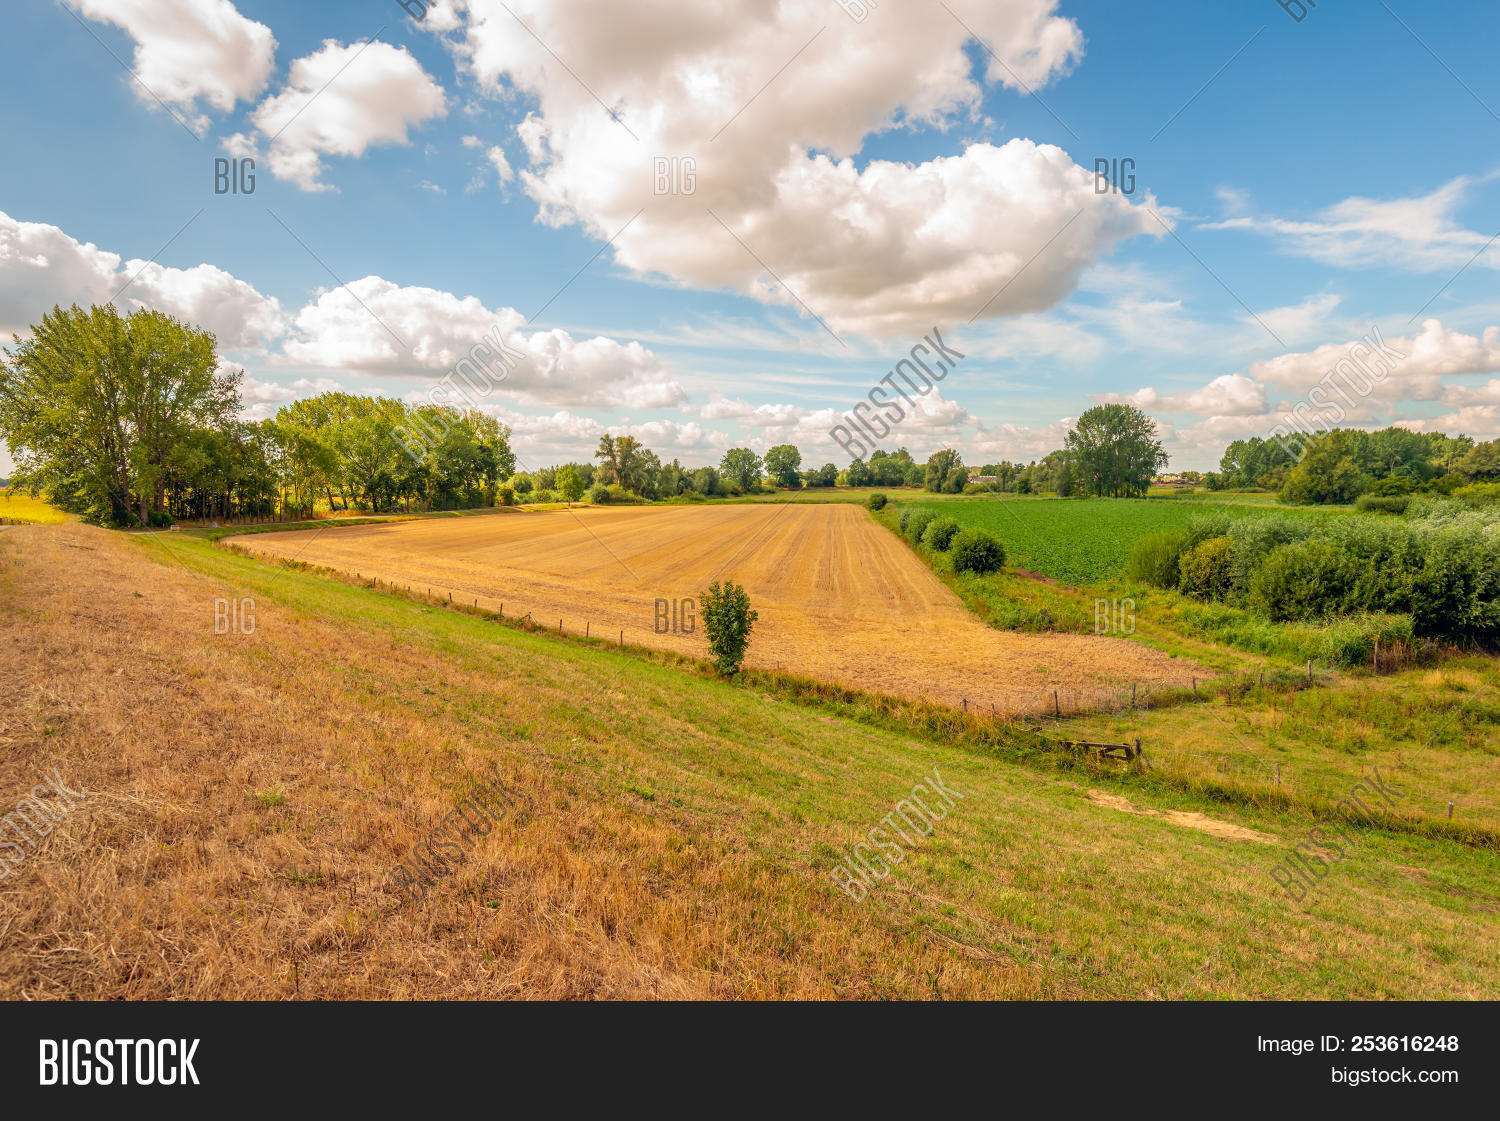 Picturesque Composition Of Different Colored Fields Seen